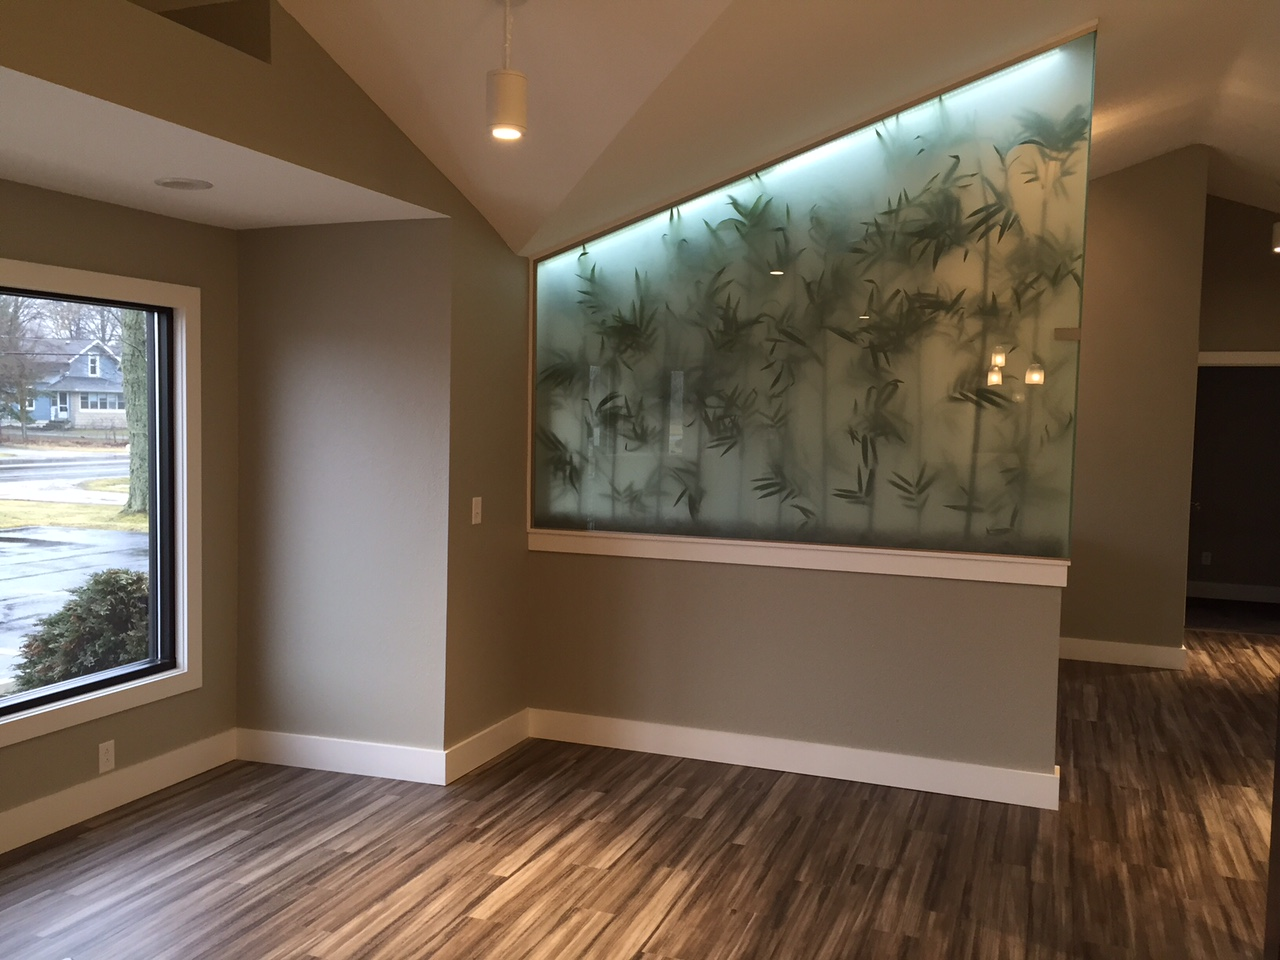 Dr. Welch Office 9 Lobby with Bamboo wall.jpg